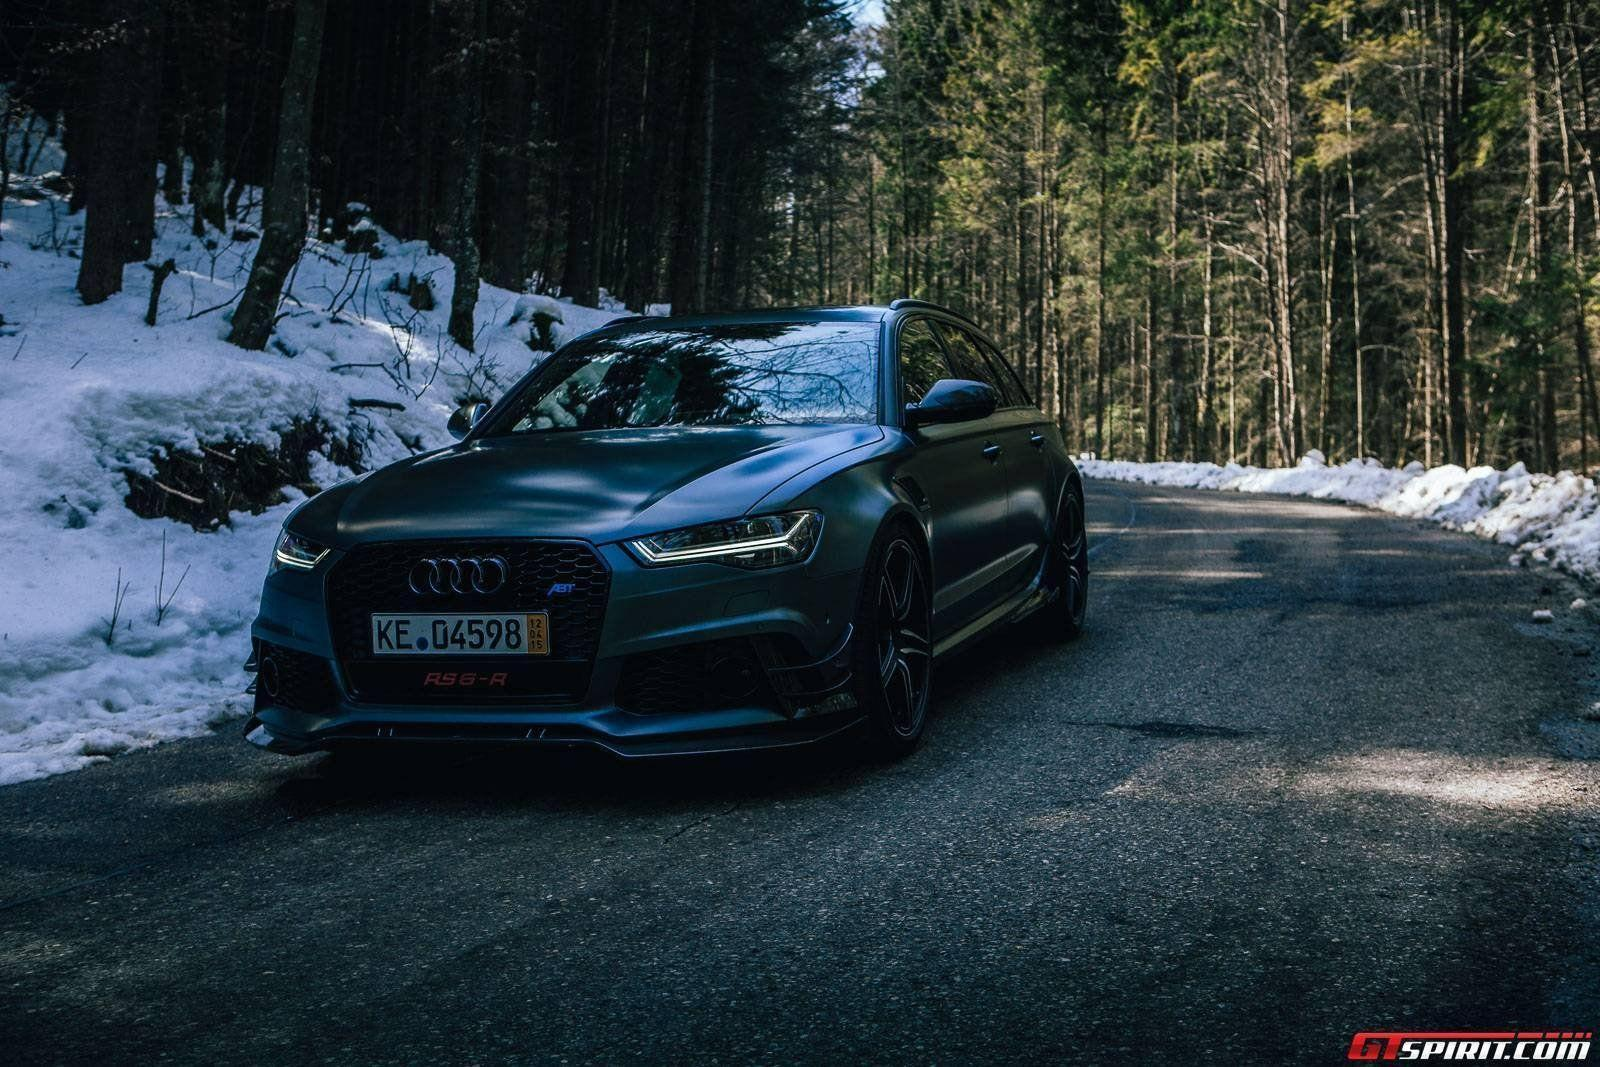 Audi Rs7 0 60 >> Audi RS6 Wallpapers - Wallpaper Cave